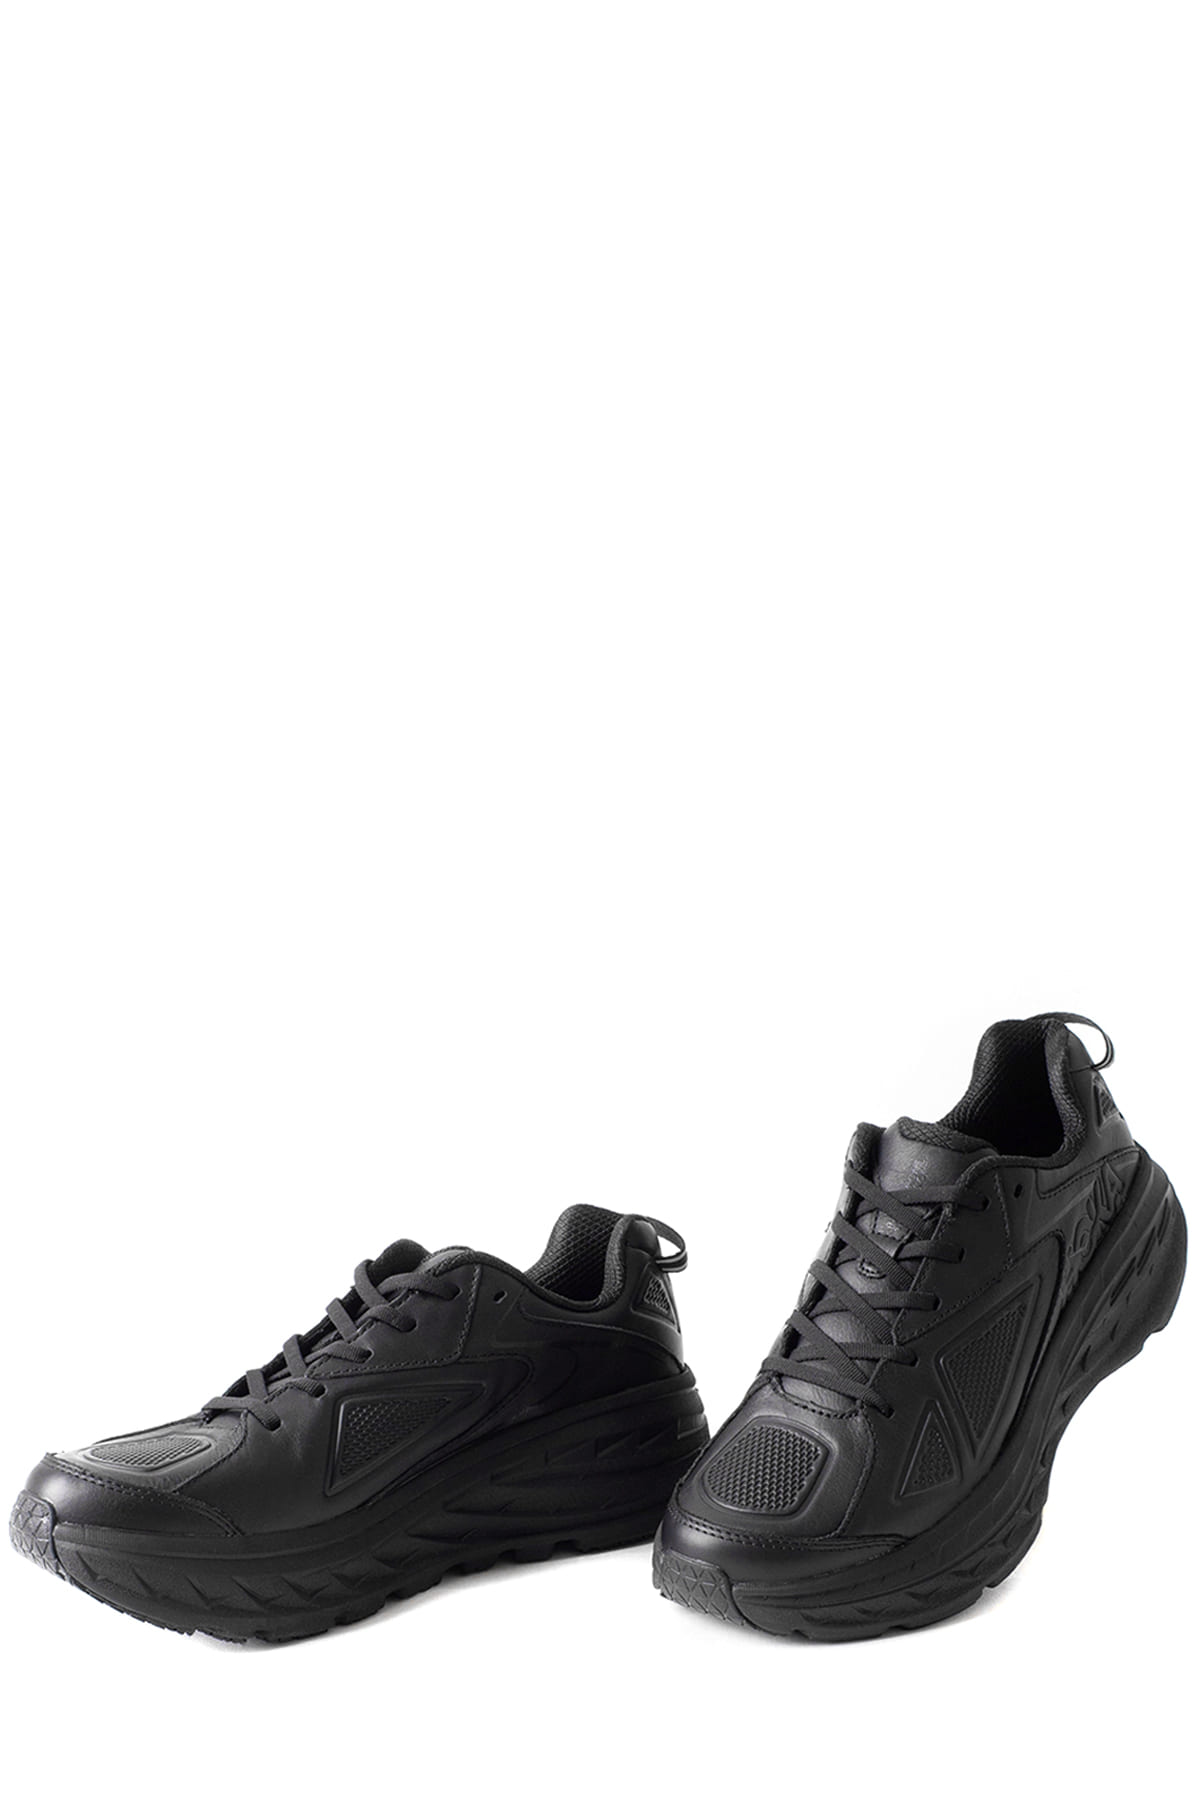 HOKA ONE ONE : Bondi Leather (Black)